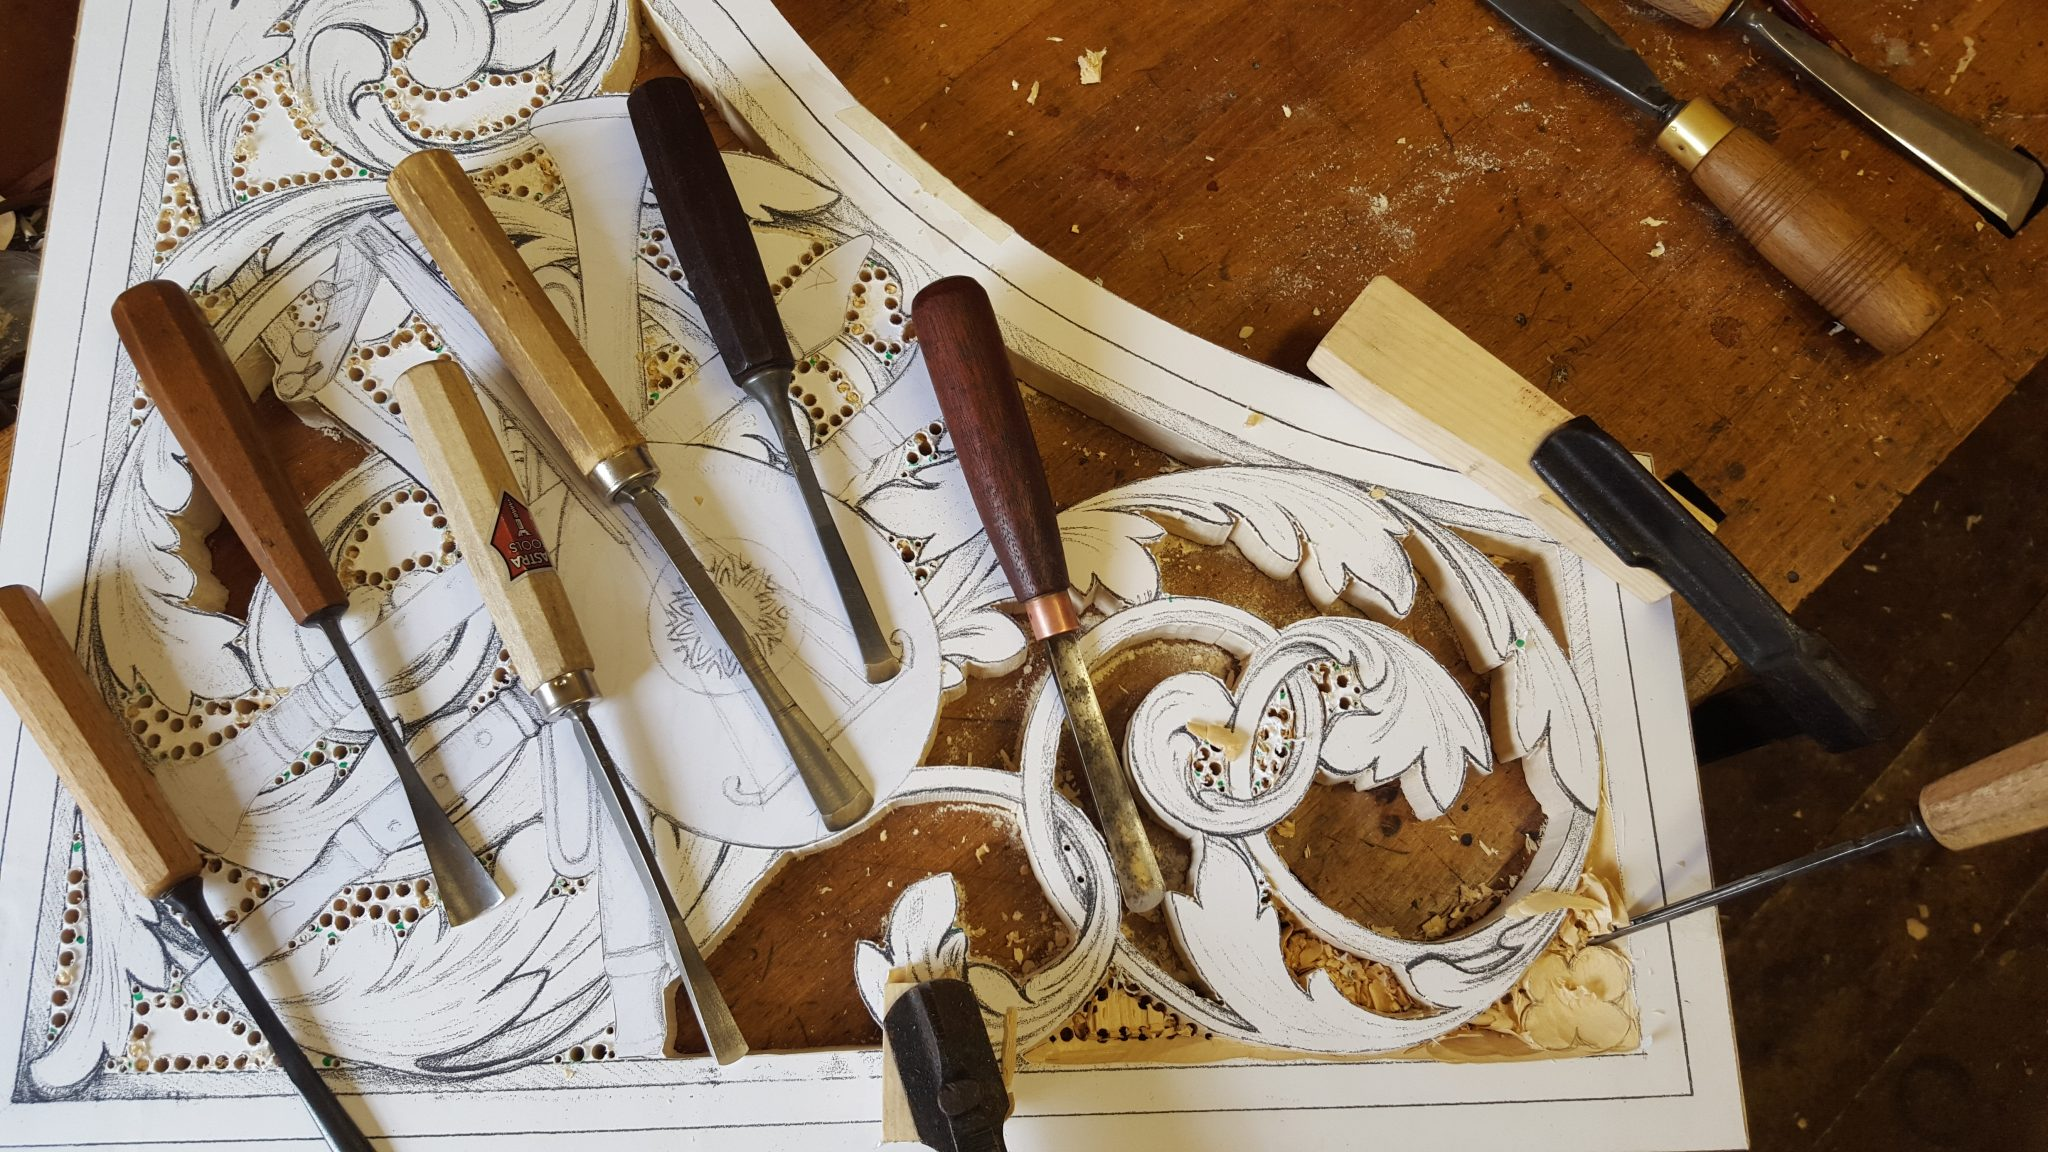 lime wood pipe shades carvings with trophy panel, lute, drawings by Laurent Robert Woodcarver